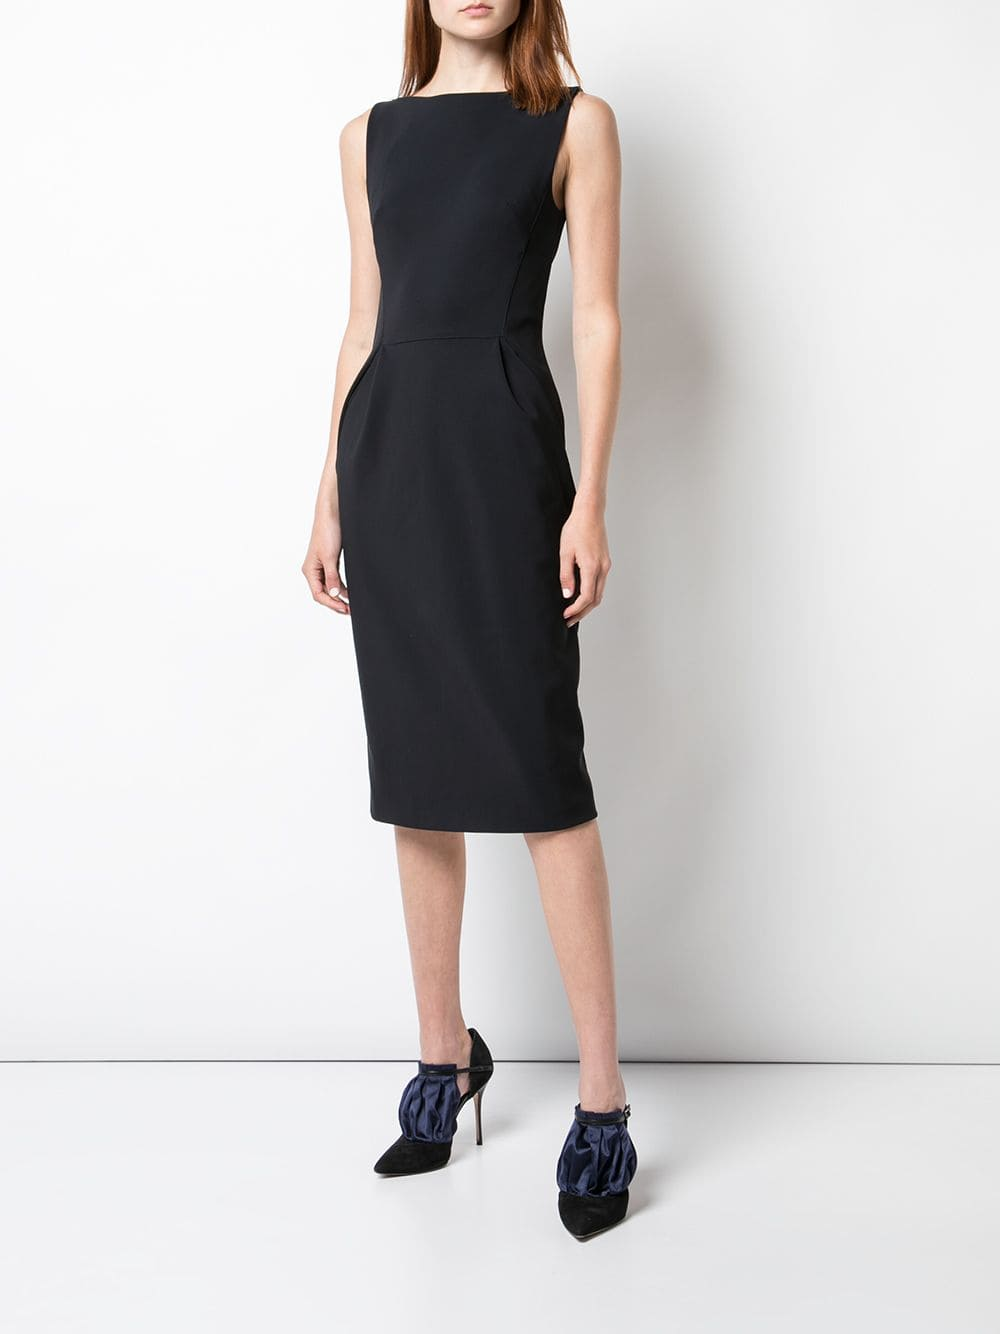 BOATNECK SHEATH DRESS IN BONDED NEOPRENE